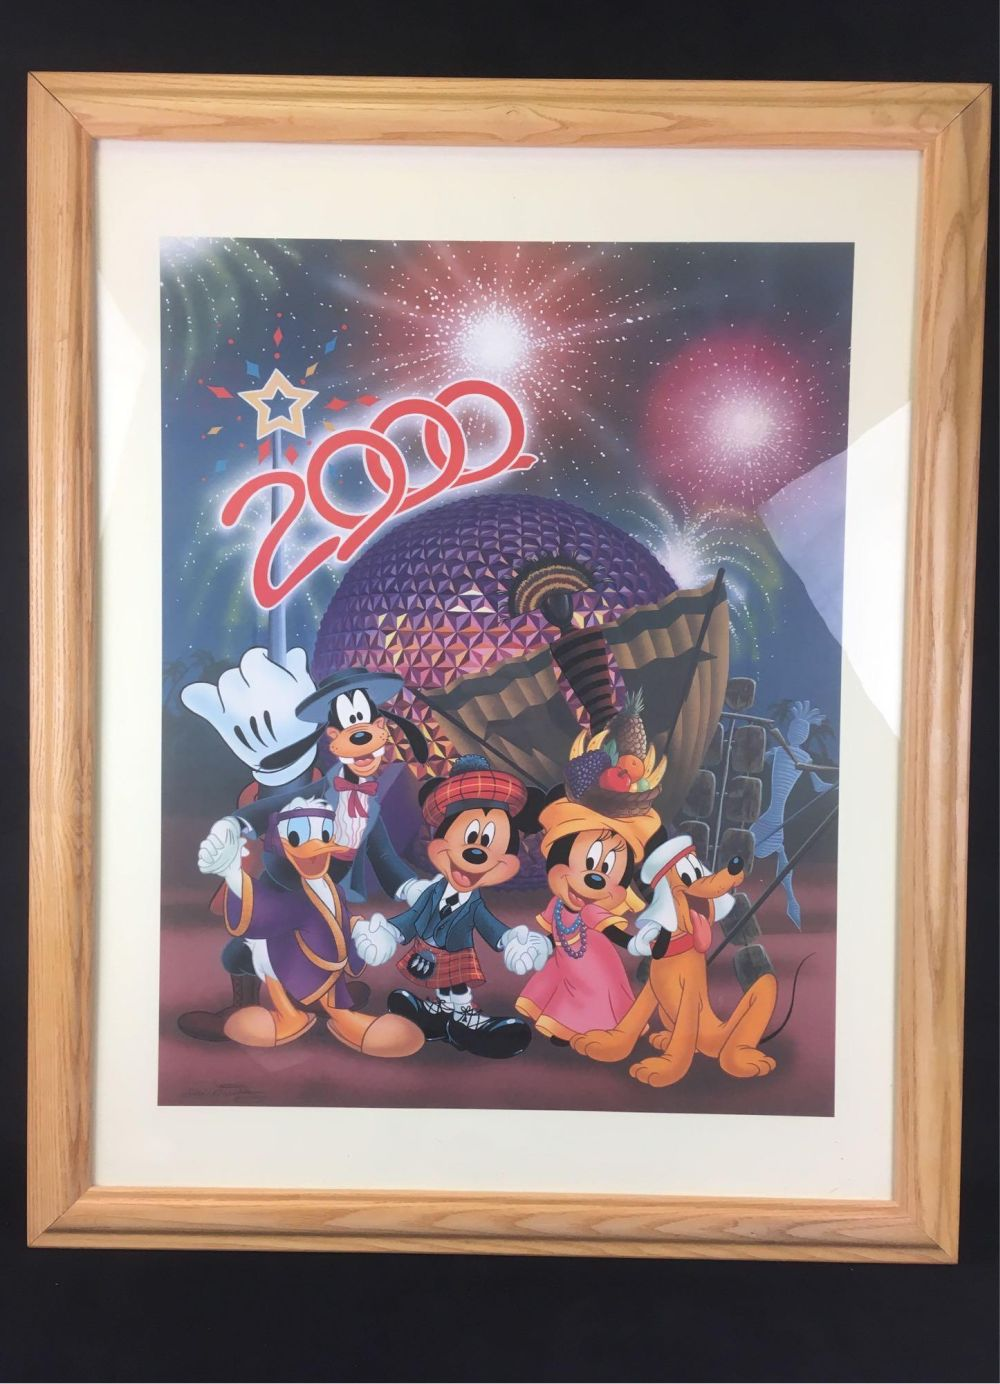 Lot 990: Disney Commemorative Print 2000 by Animator Don Williams